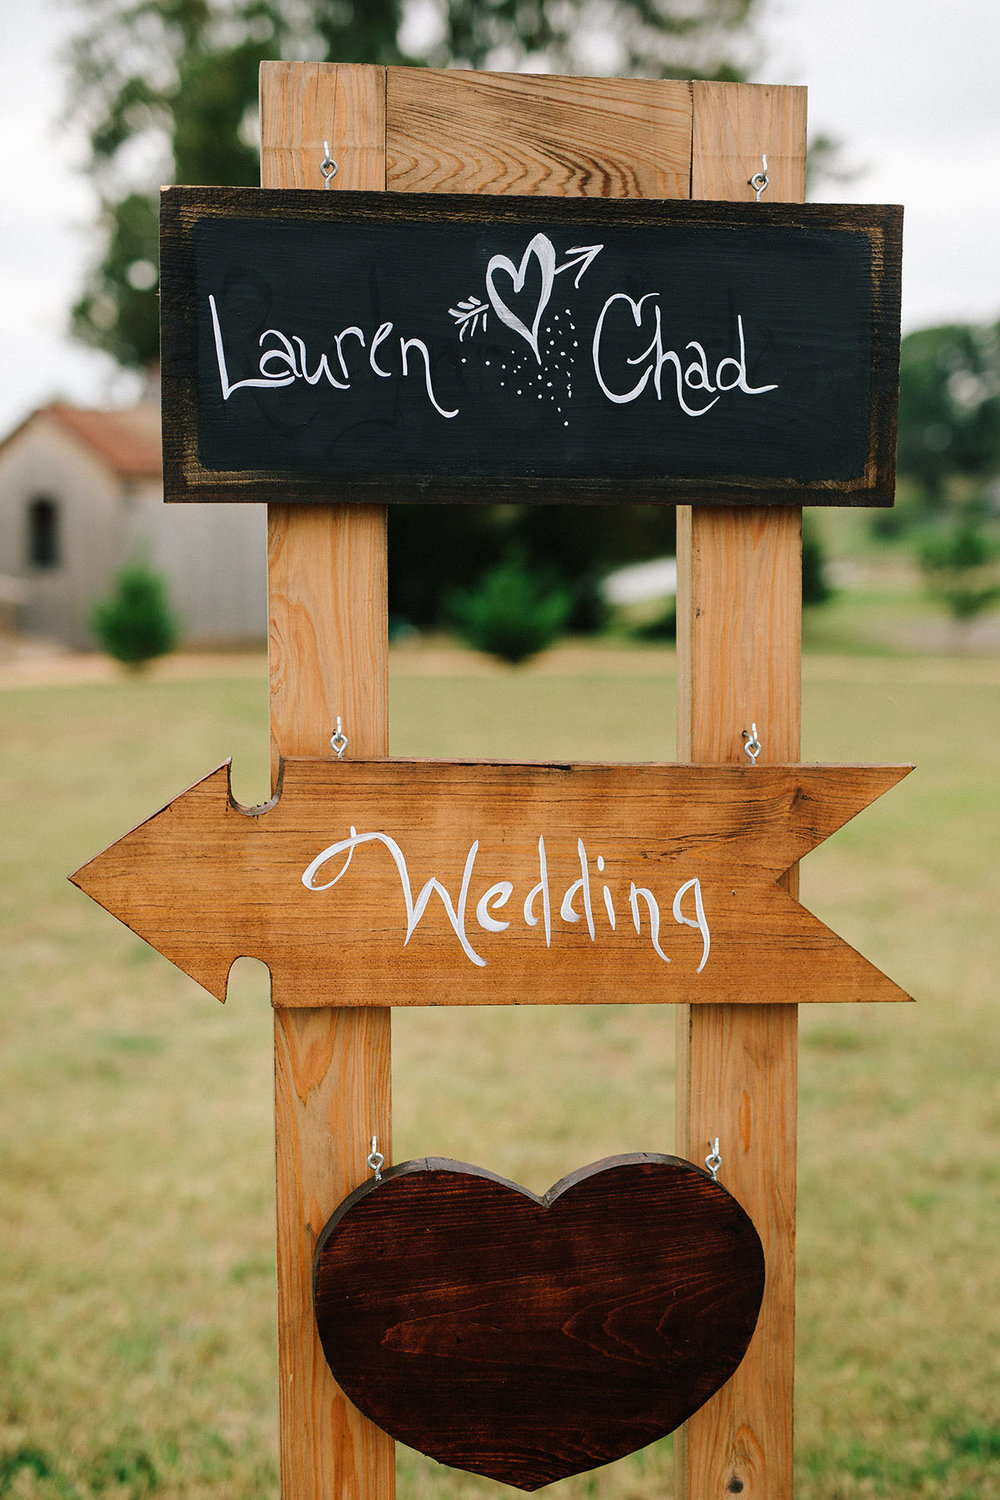 lauren_chad_wedding-2.jpg